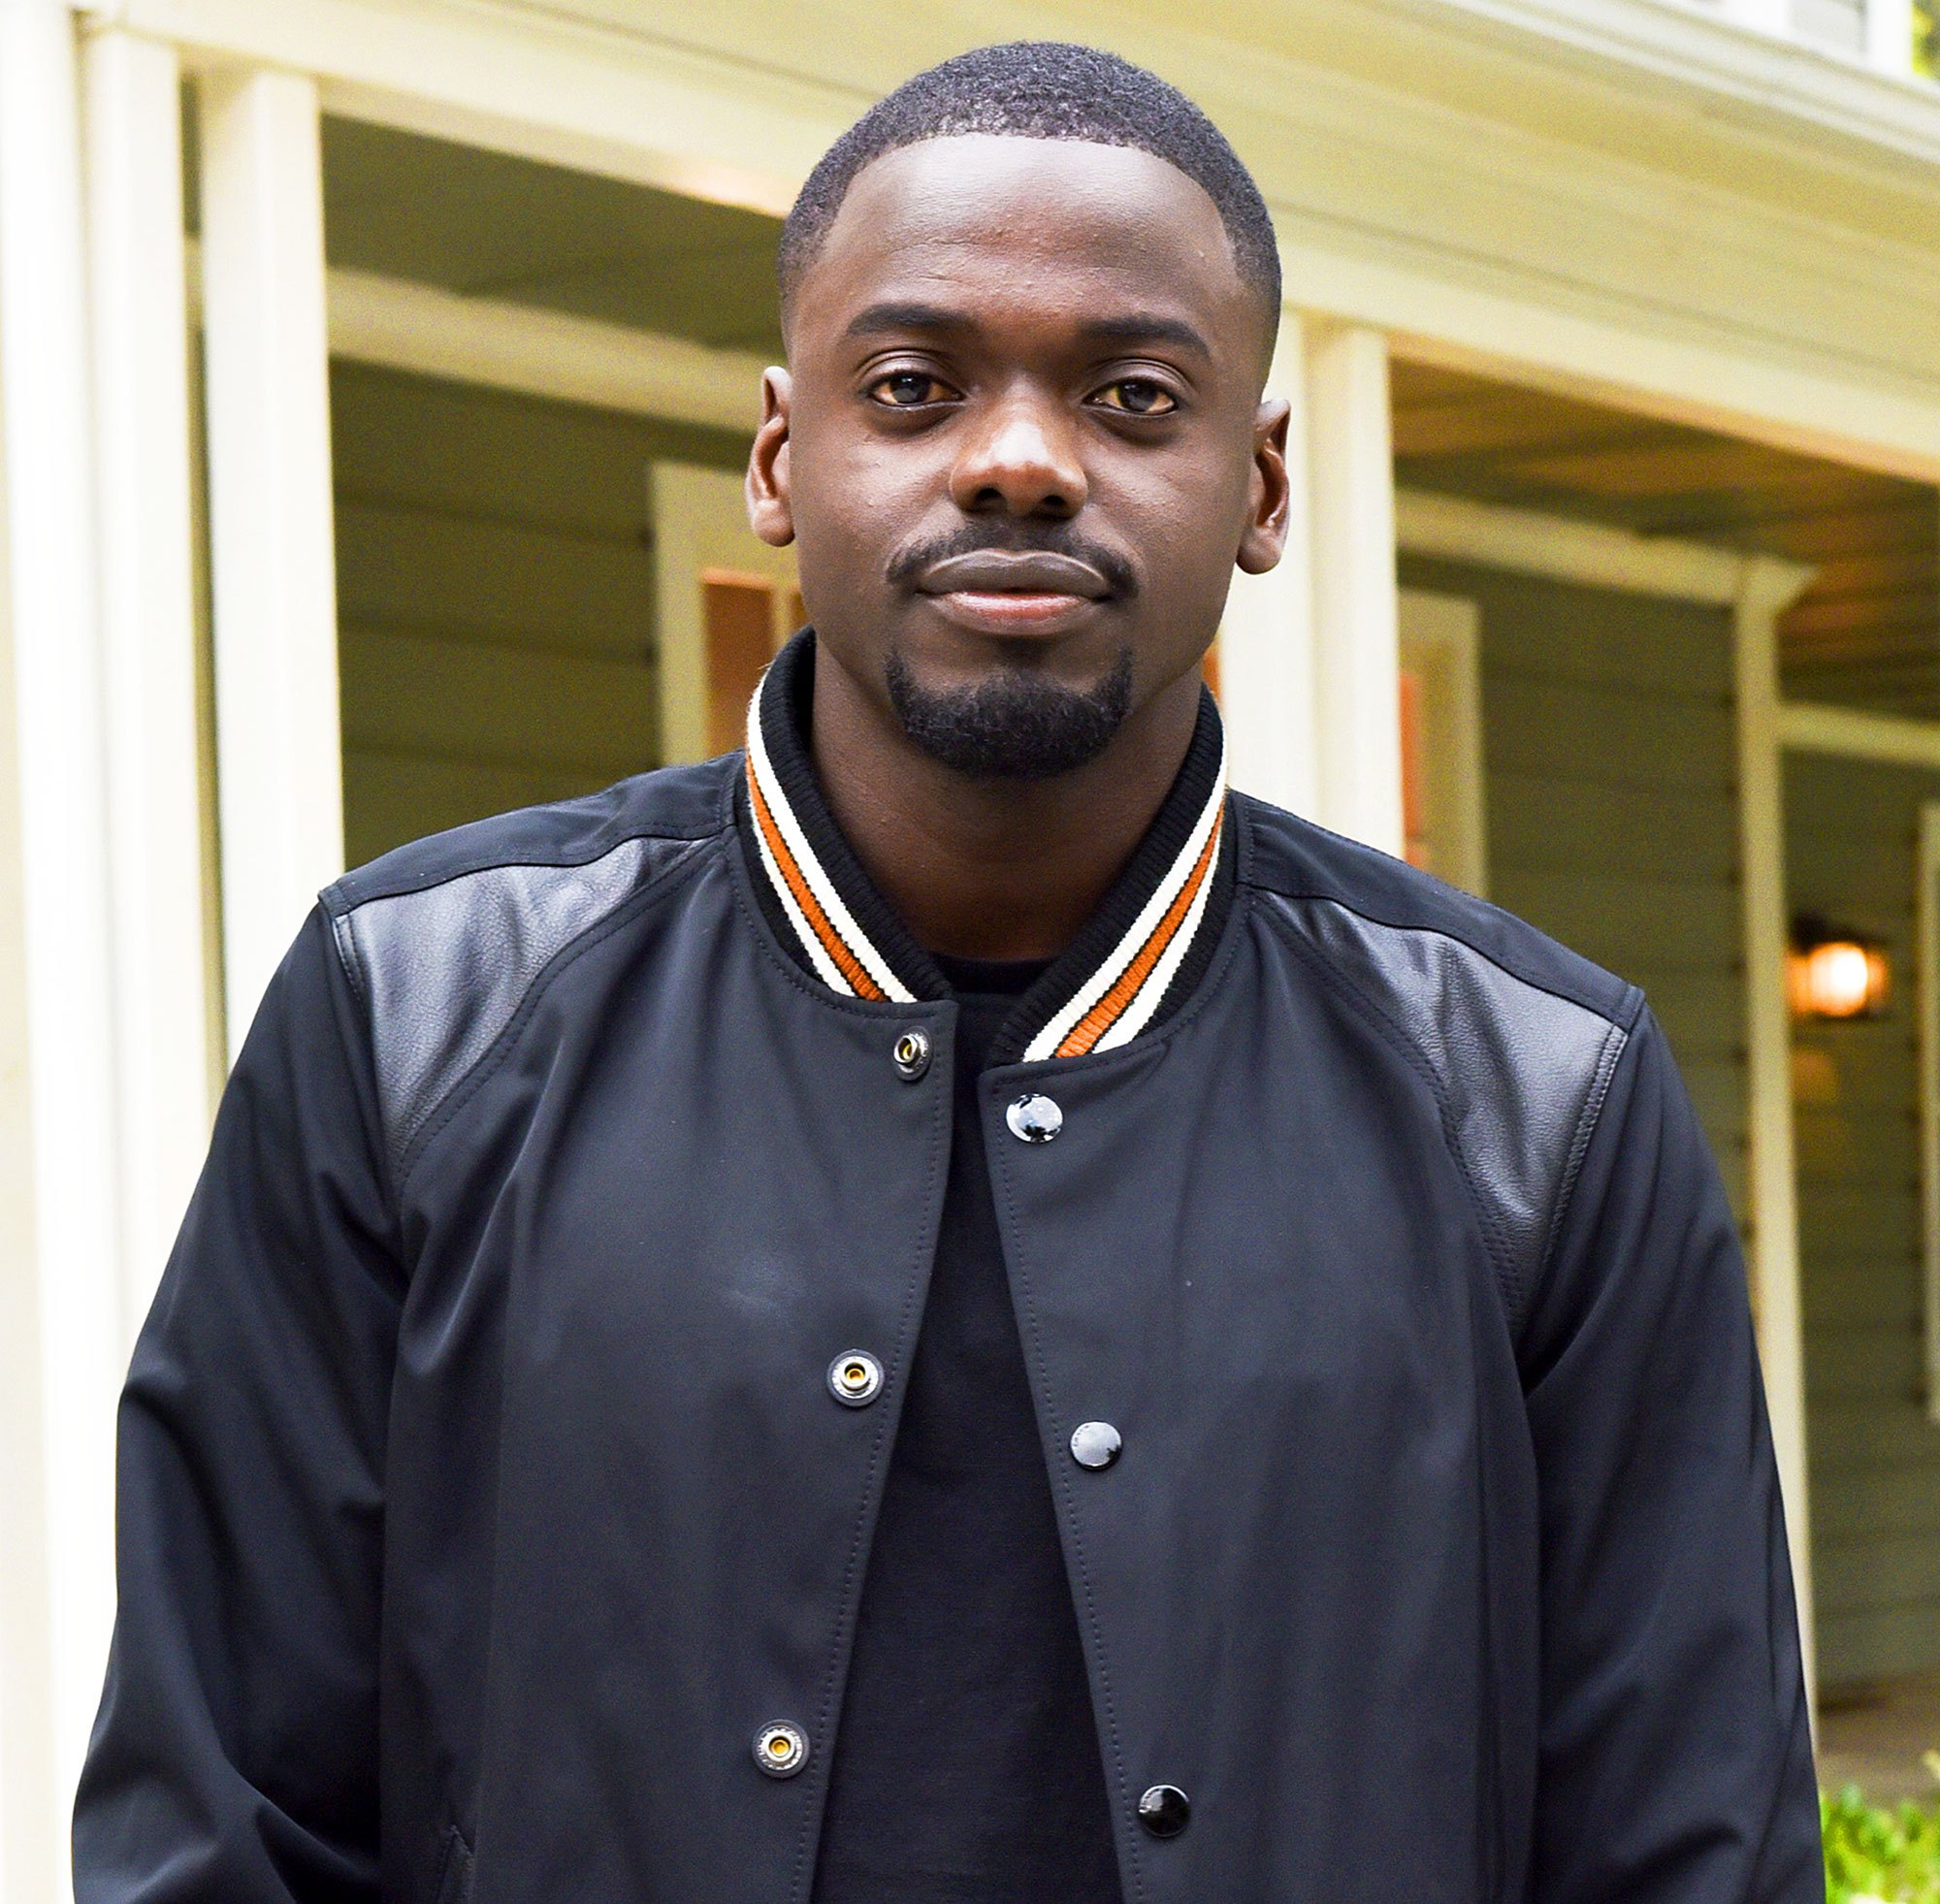 Daniel Kaluuya arrives at Get Out garden party on May 9, 2017.